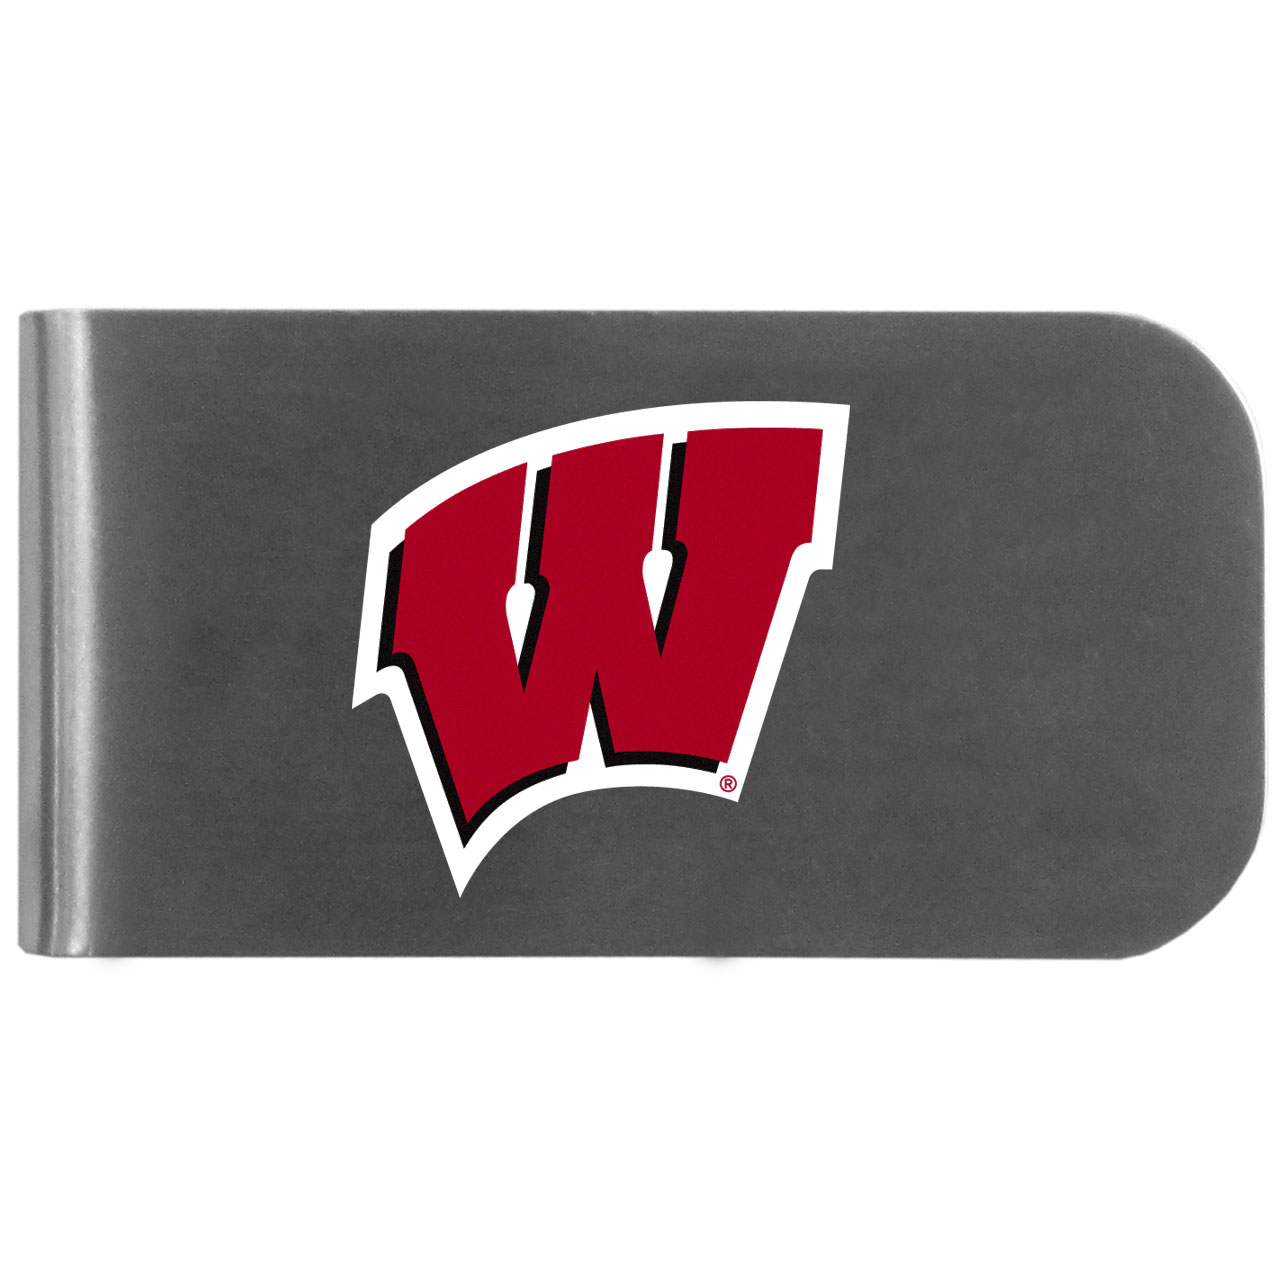 Wisconsin Badgers Logo Bottle Opener Money Clip - This unique money clip features a classic, brushed-metal finish with a handy bottle opener feature on the back. The clip has the Wisconsin Badgers logo expertly printed on the front of the clip.